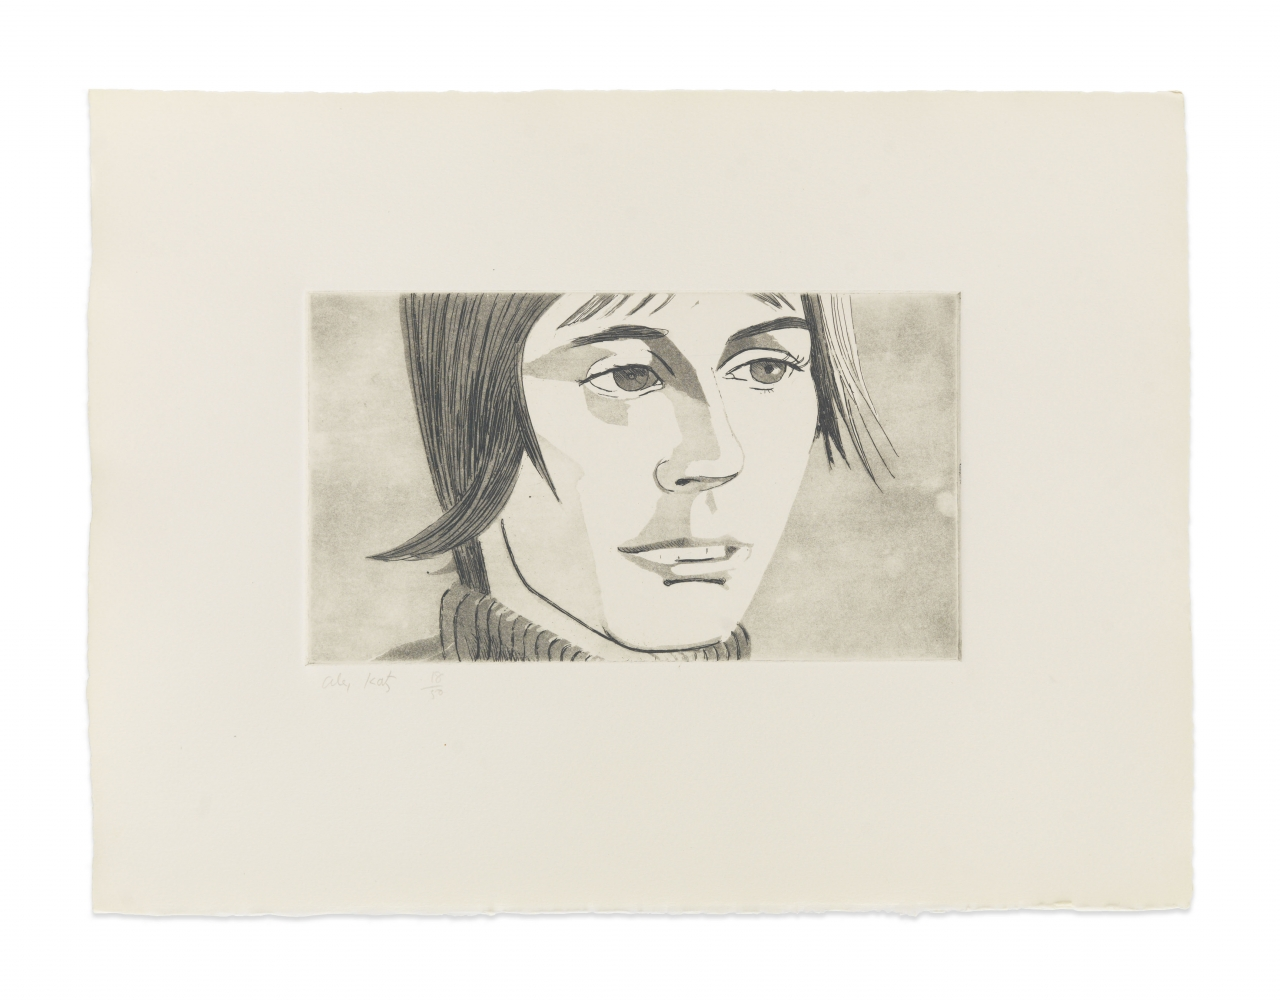 Aquatint by Alex Katz of portrait at 3/4 view with straight hair, mouth slightly open, and wearing a turtle neck against a tinted gray background